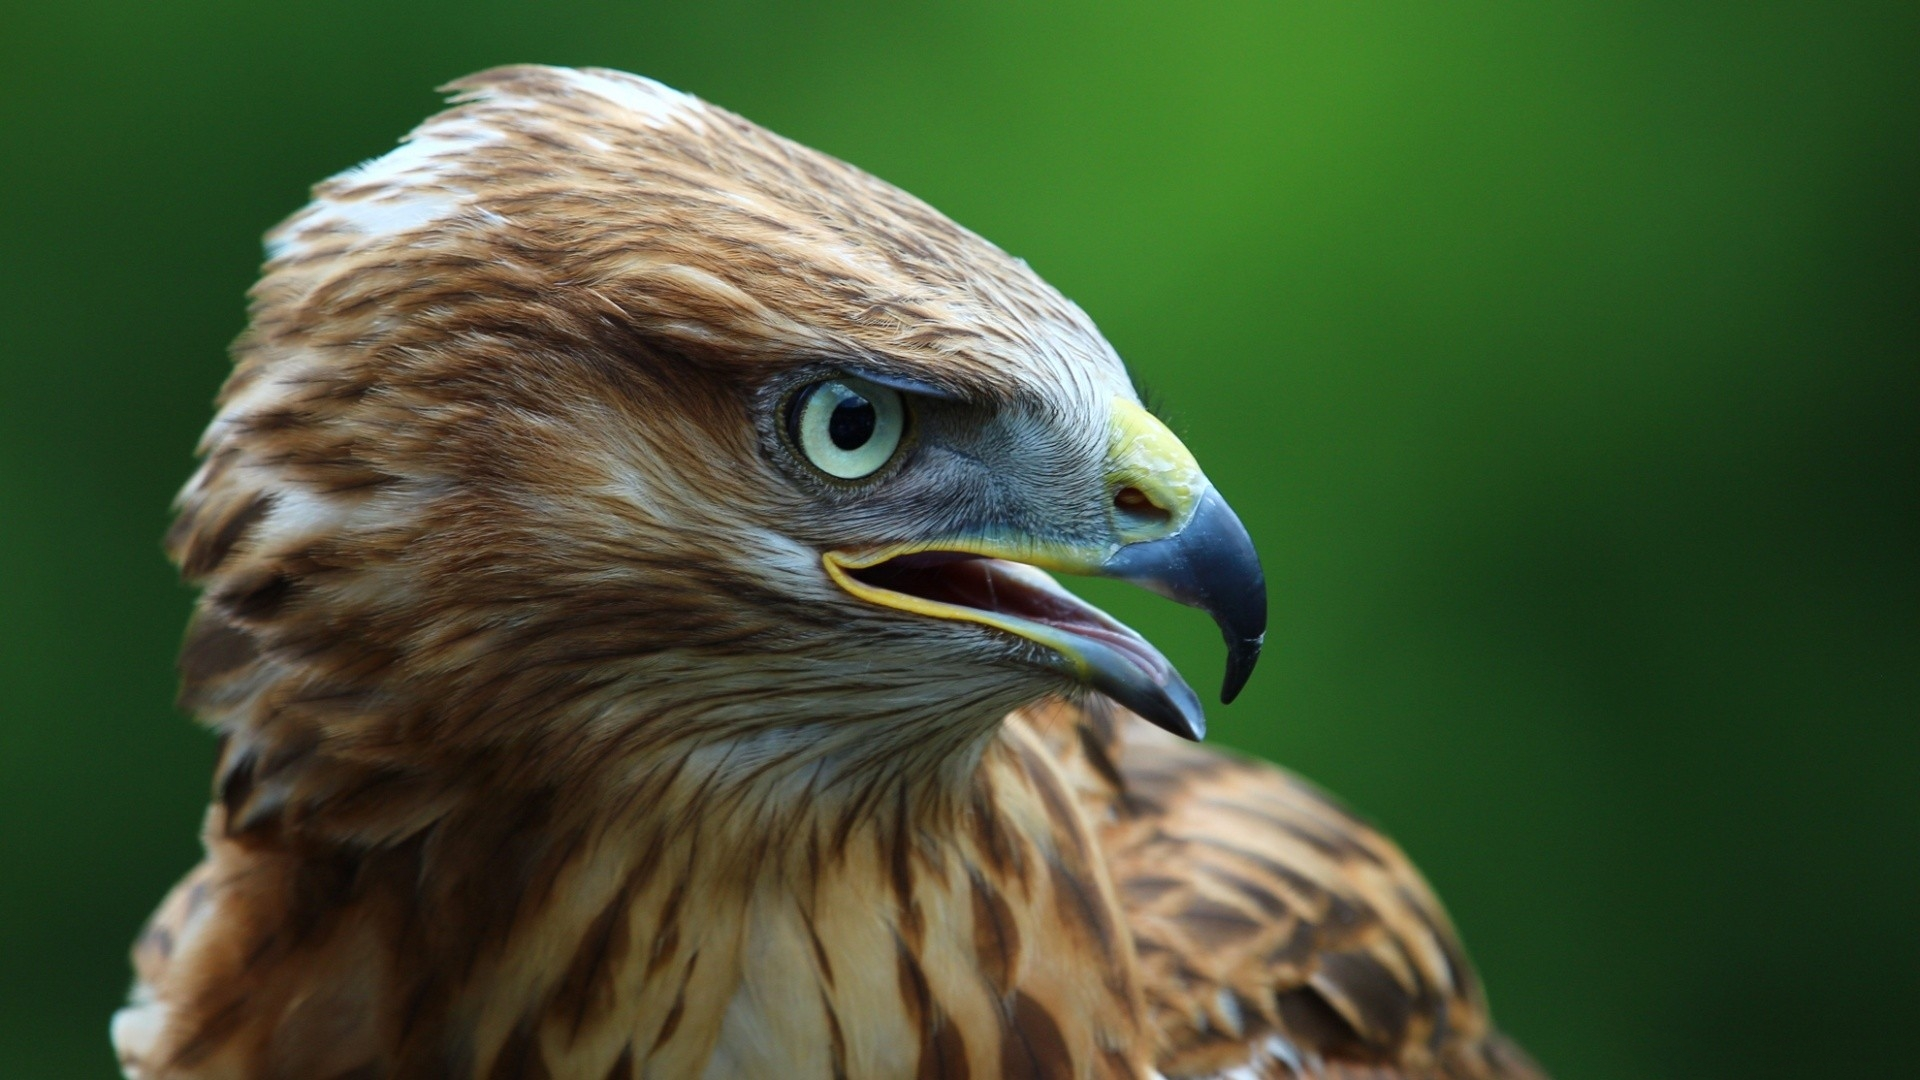 Falcon High Resolution Wallpapers: Falcon Wallpapers High Quality